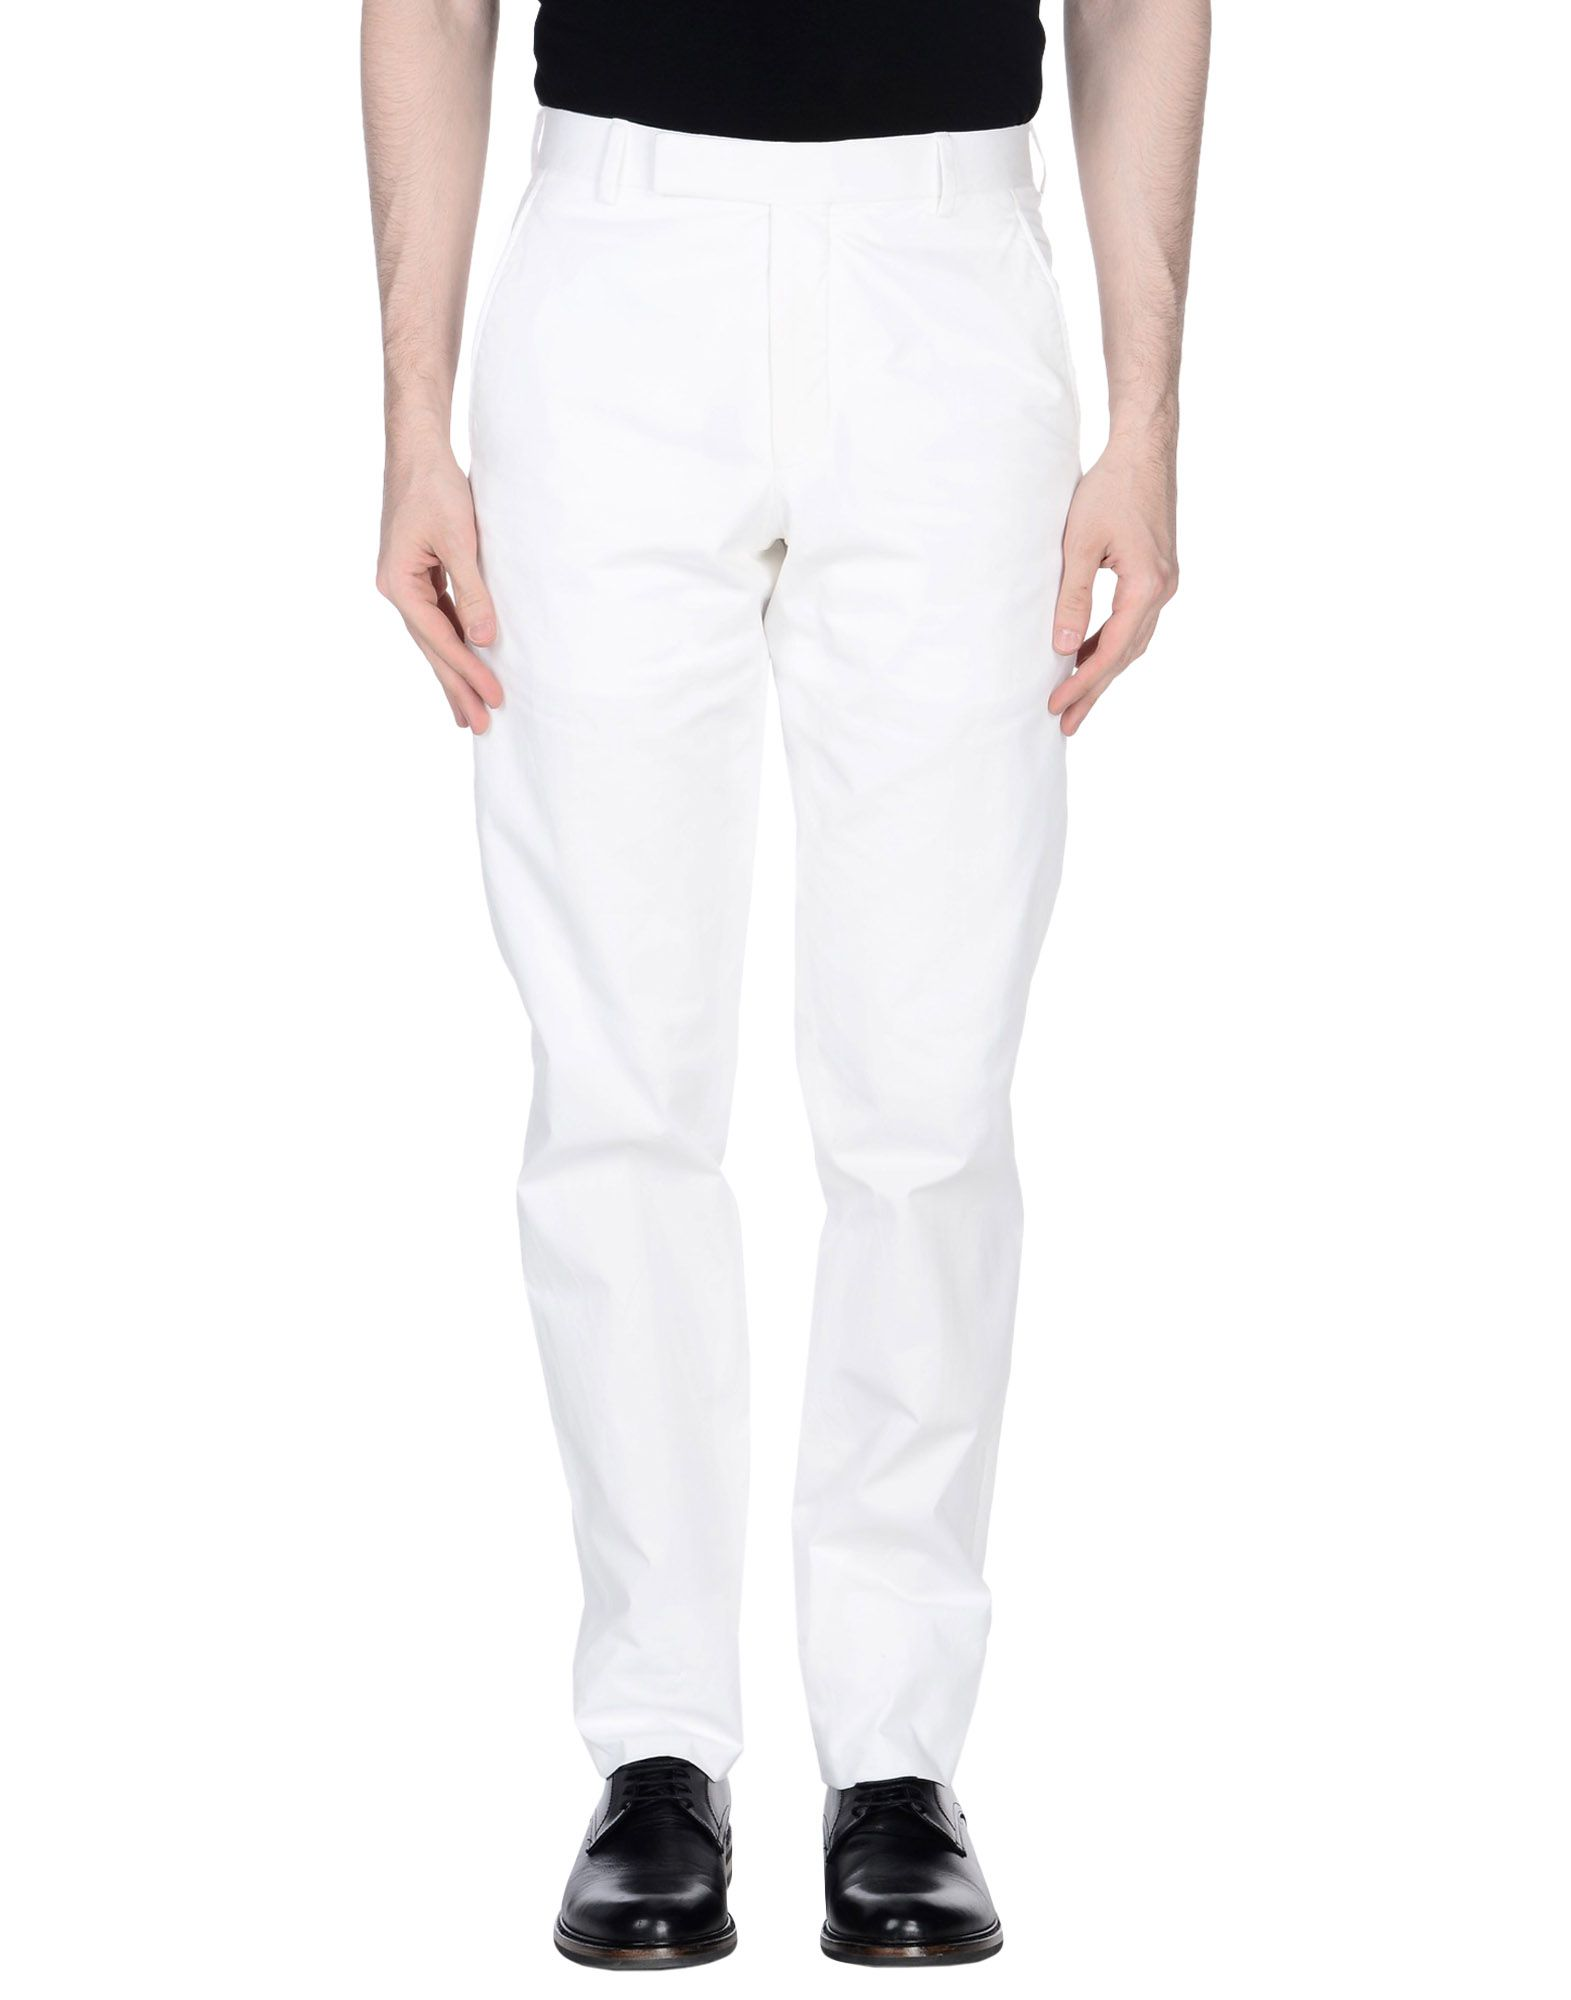 Pantalone Richard James Uomo - Acquista online su